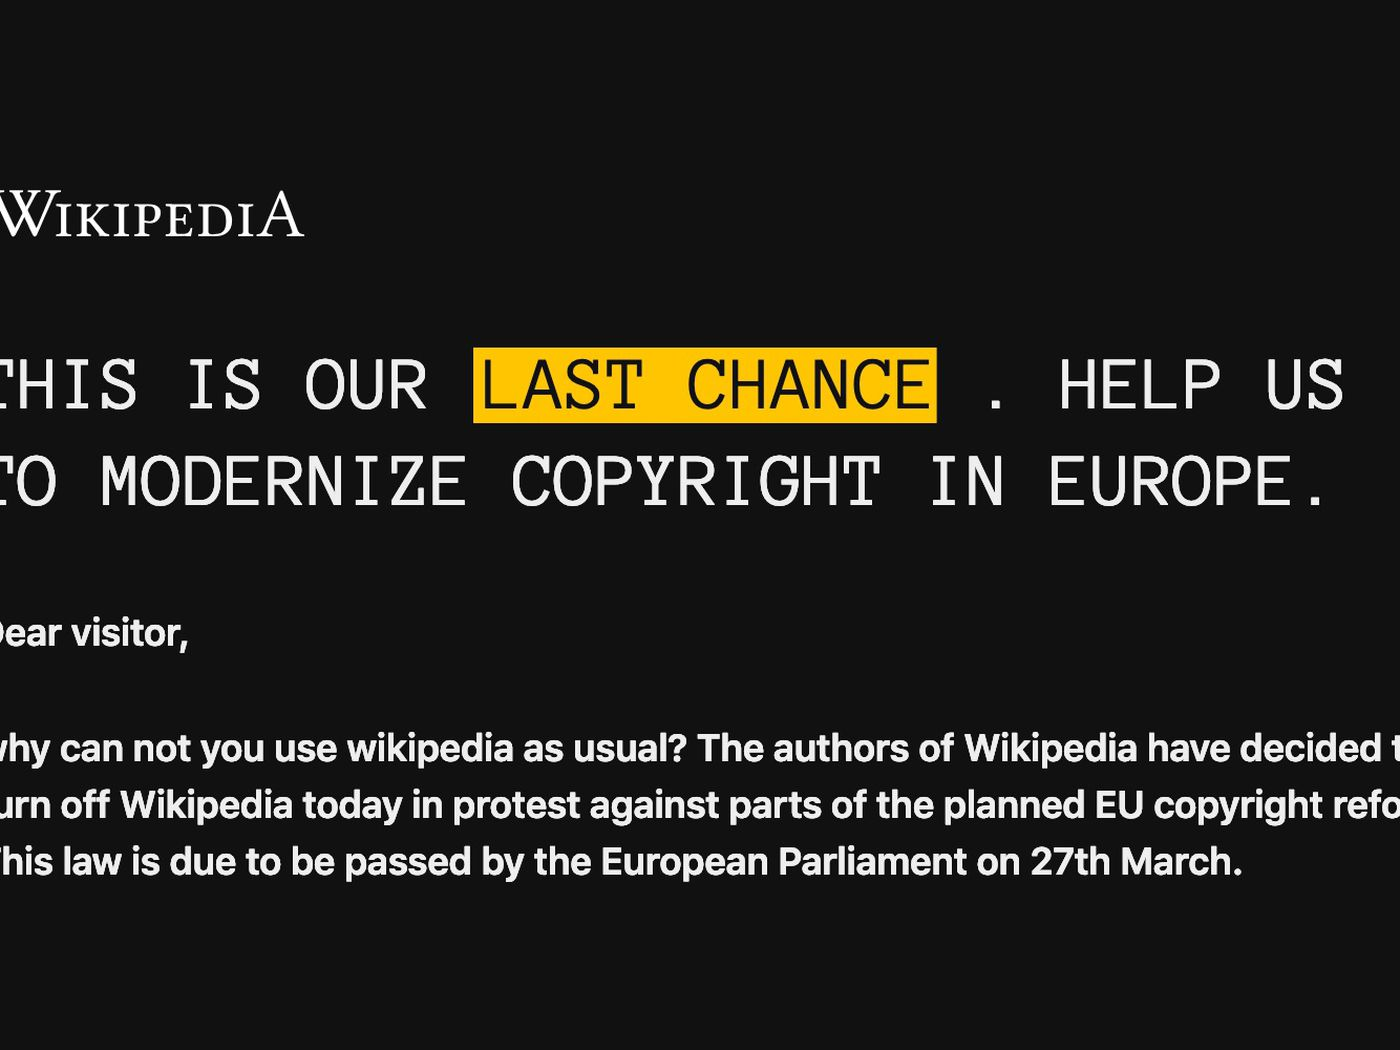 European Wikipedias have been turned off for the day to